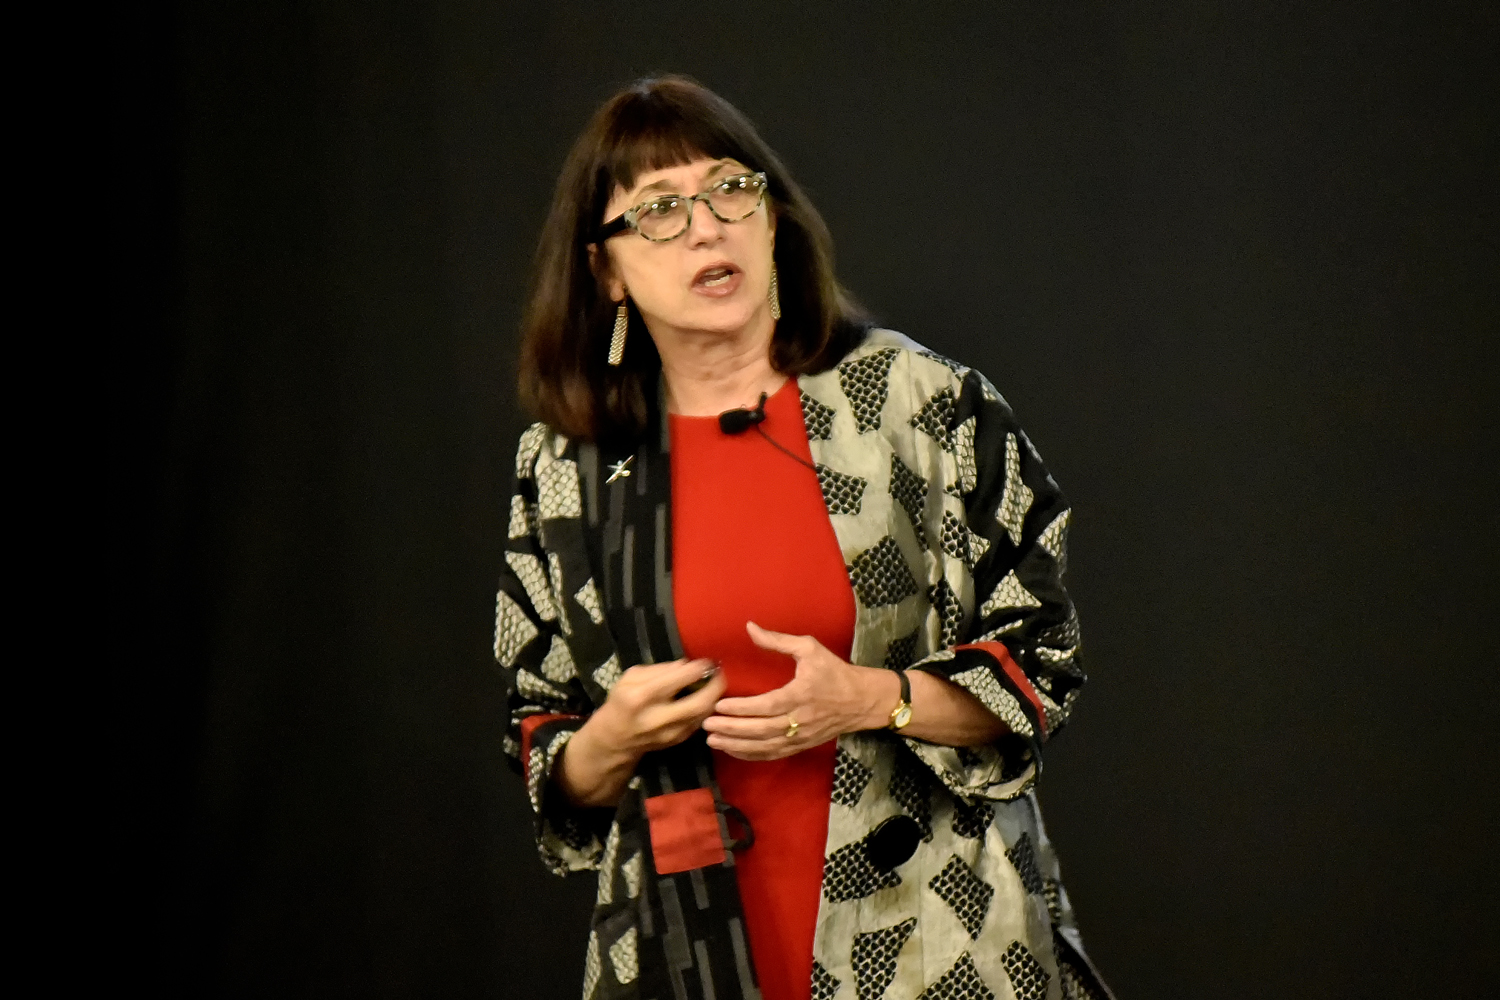 Dr. Maryanne Wolf - On October 24th, we are honored that Maryanne Wolf will be our Featured Speaker.